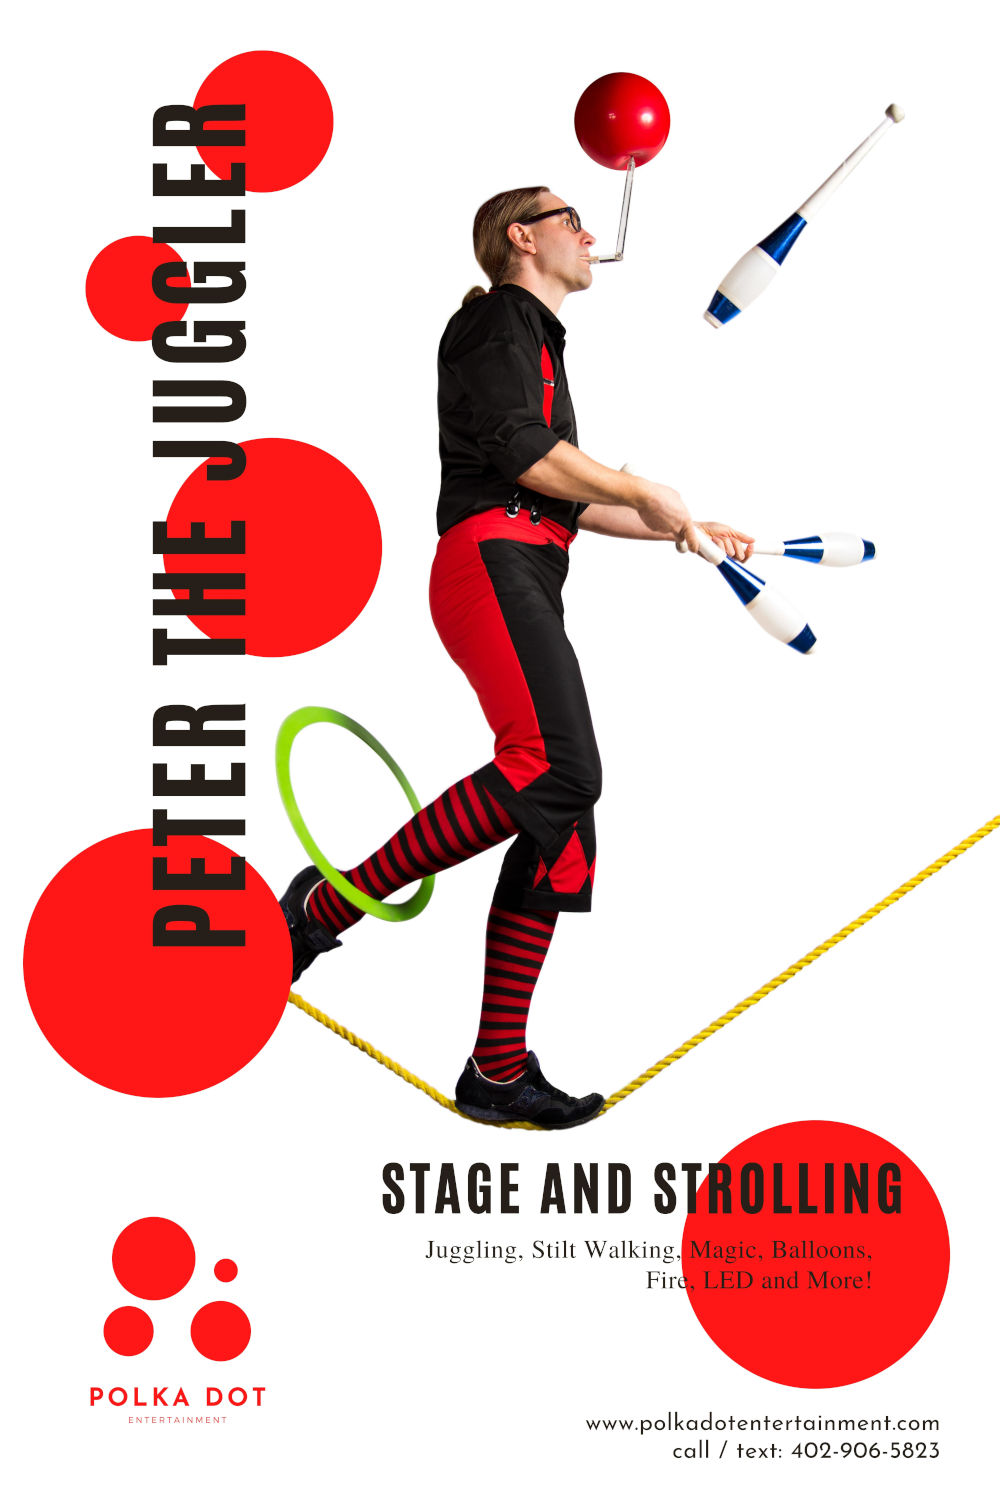 Peter combines juggling with comedy and danger stunts